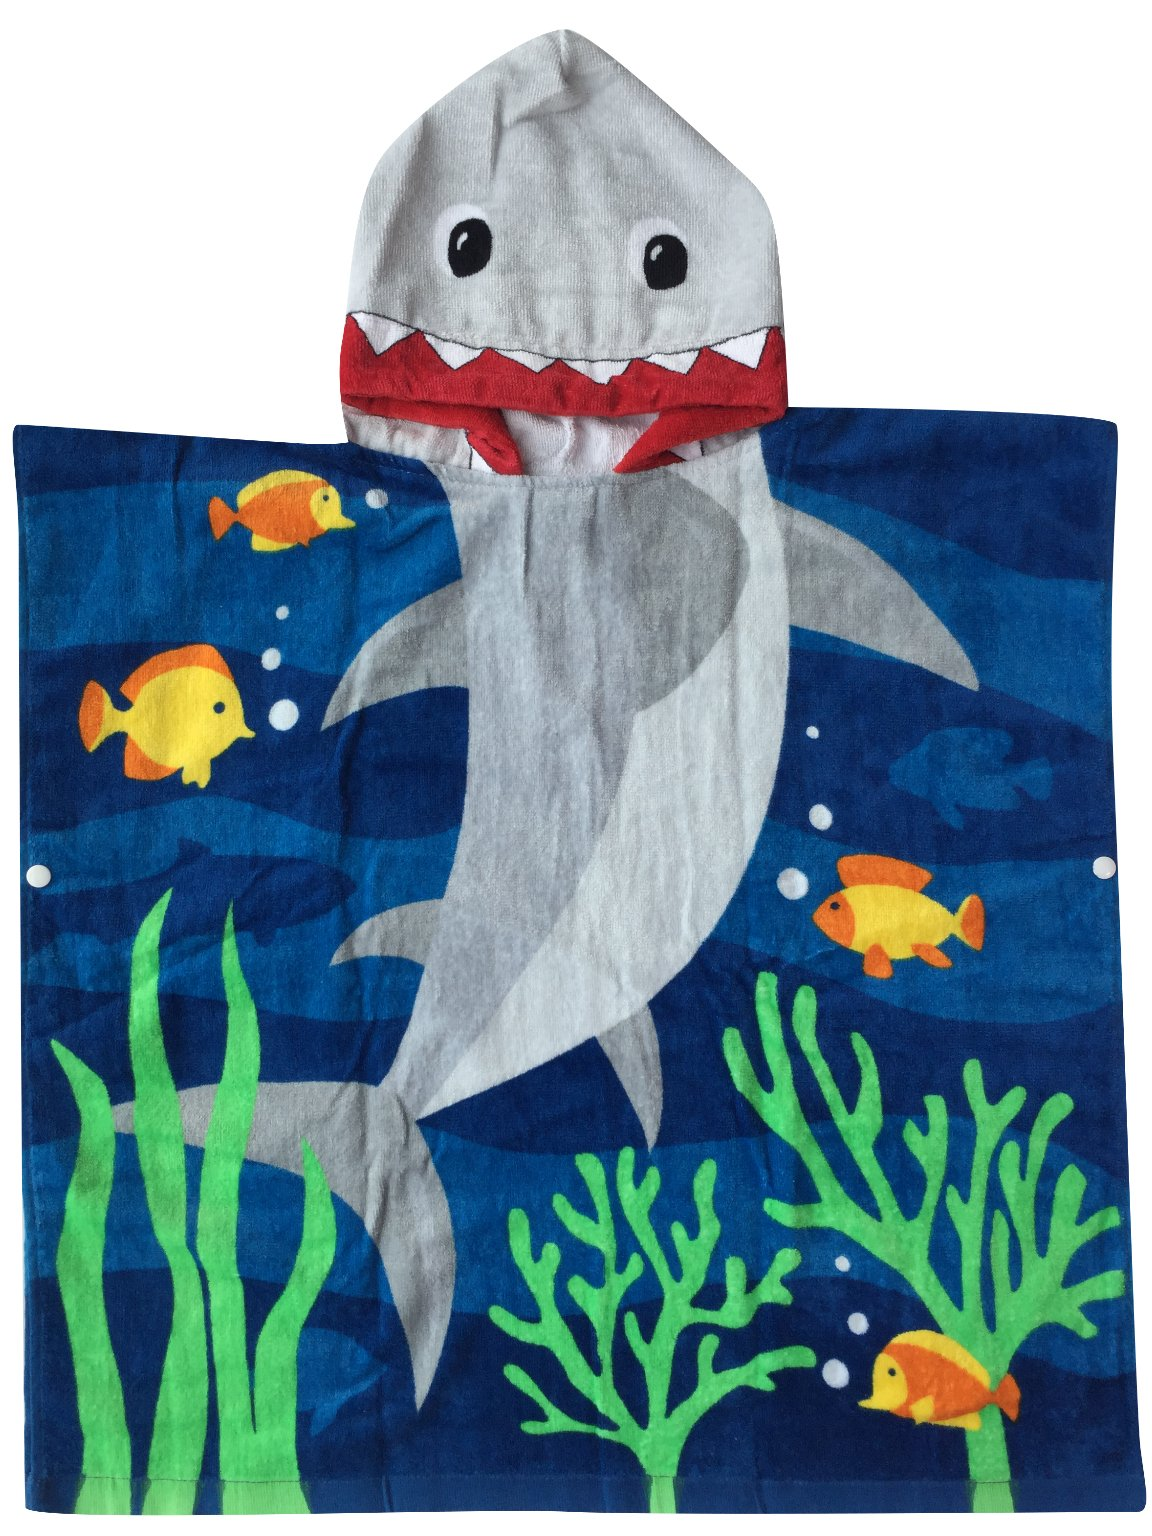 Hooded Towel for Age One to Five Years Toddler/Kid Boys, 100% Premium Cotton, Use for Bath Beach and Pool, Extra Large Size 24X48 inches, Ultra Breathable and Soft for All Seasons, Shark Theme by Athaelay